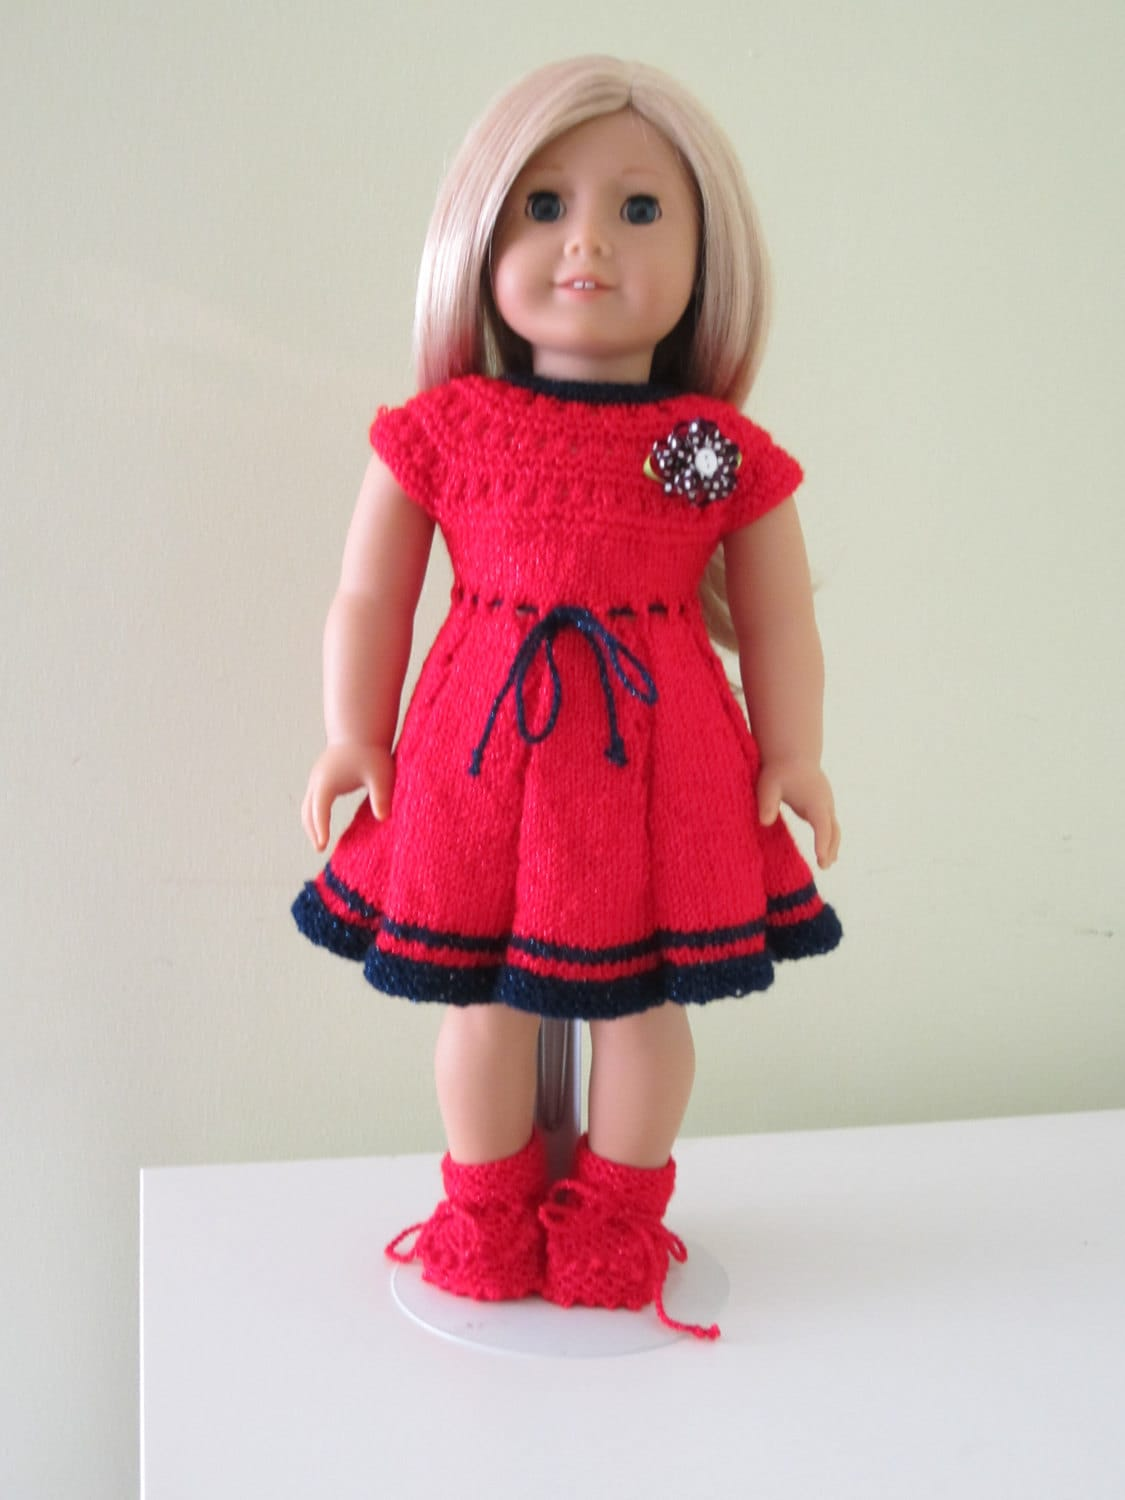 Knitting Patterns For Our Generation Dolls : Unavailable Listing on Etsy